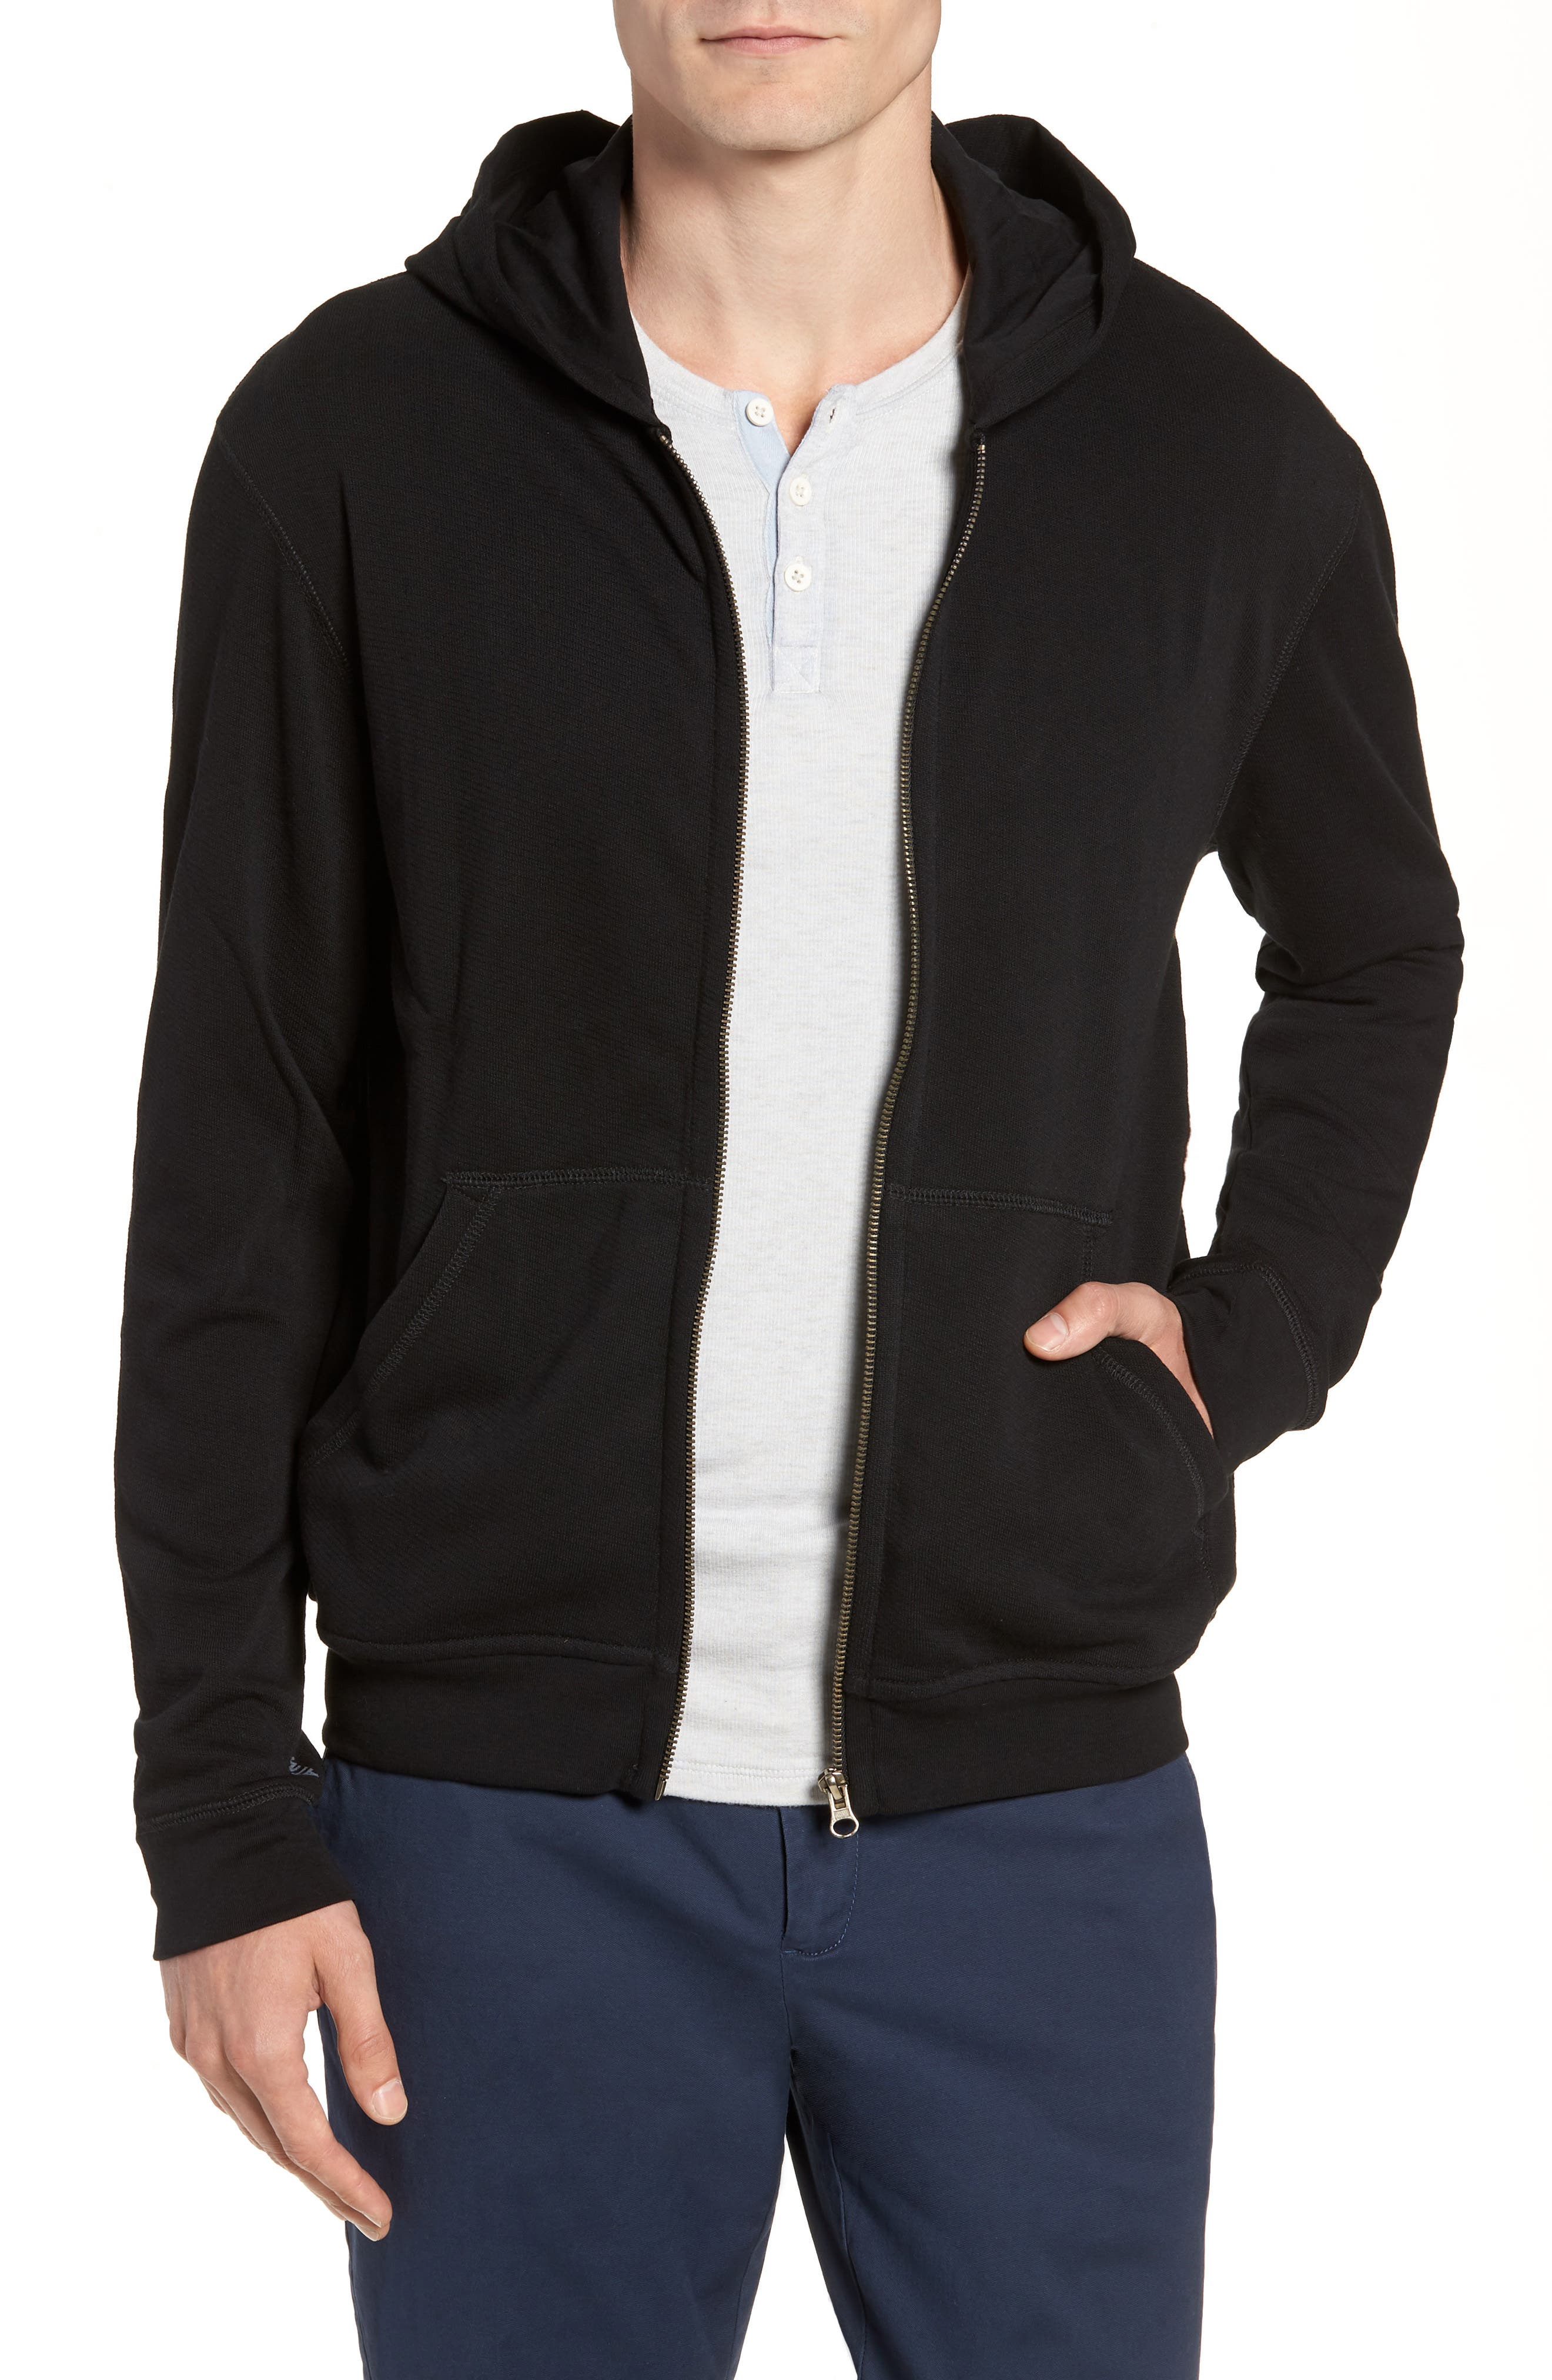 French Terry Zip Hoodie,                         Main,                         color, Black